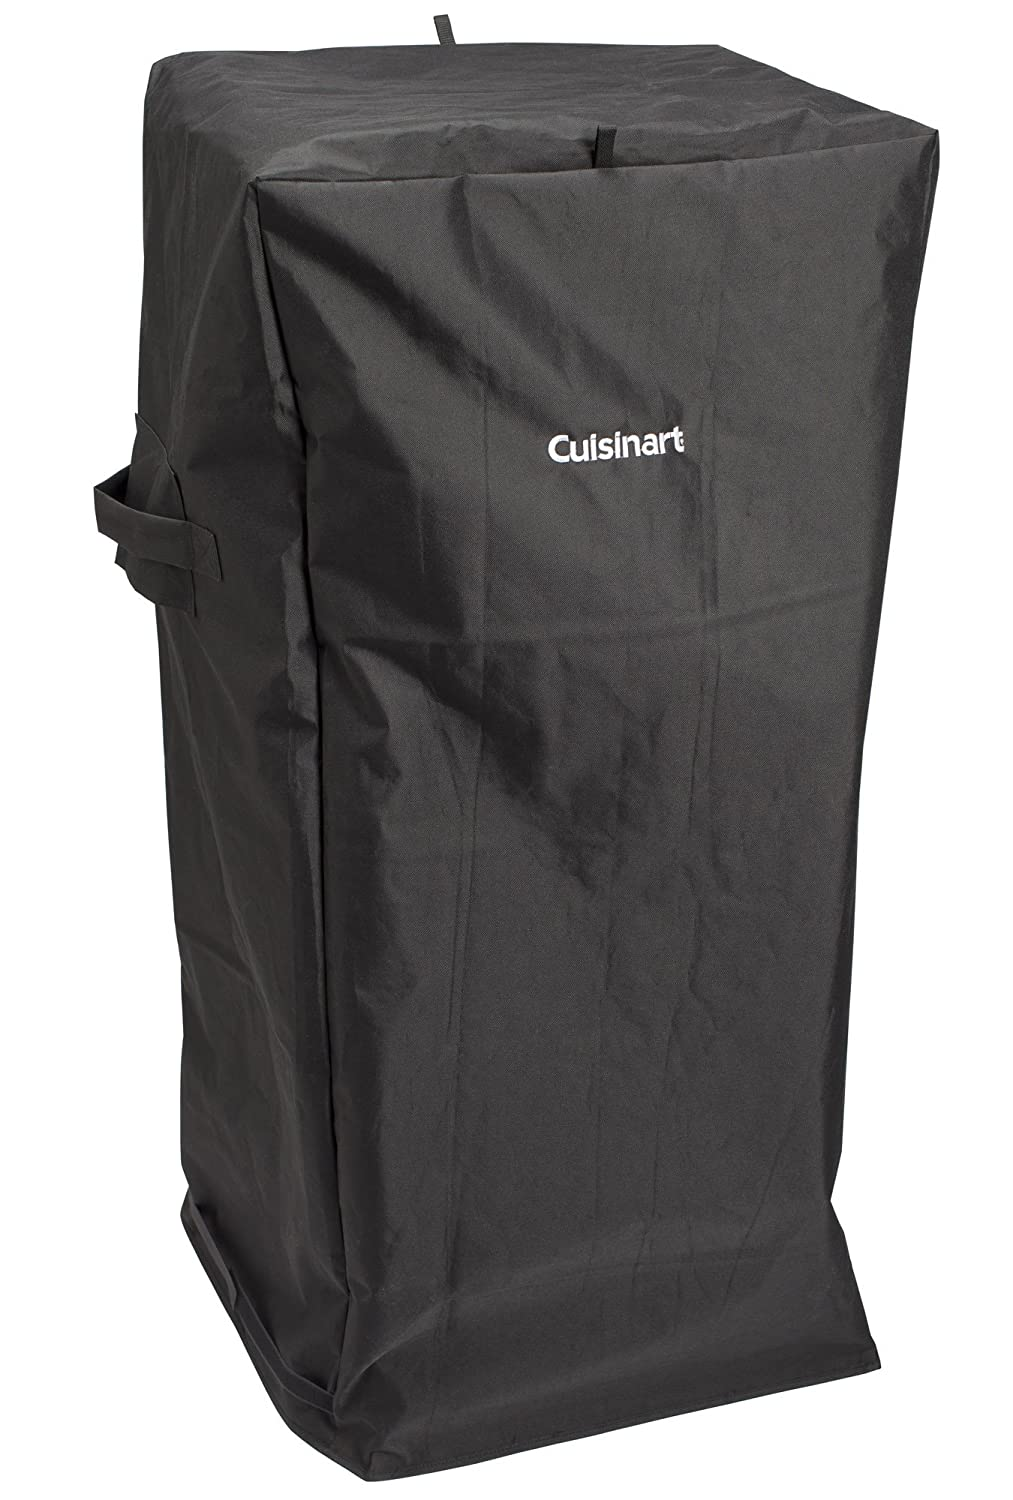 Cuisinart CGC-10244 Vertical Smoker Cover, Fits up to 36""